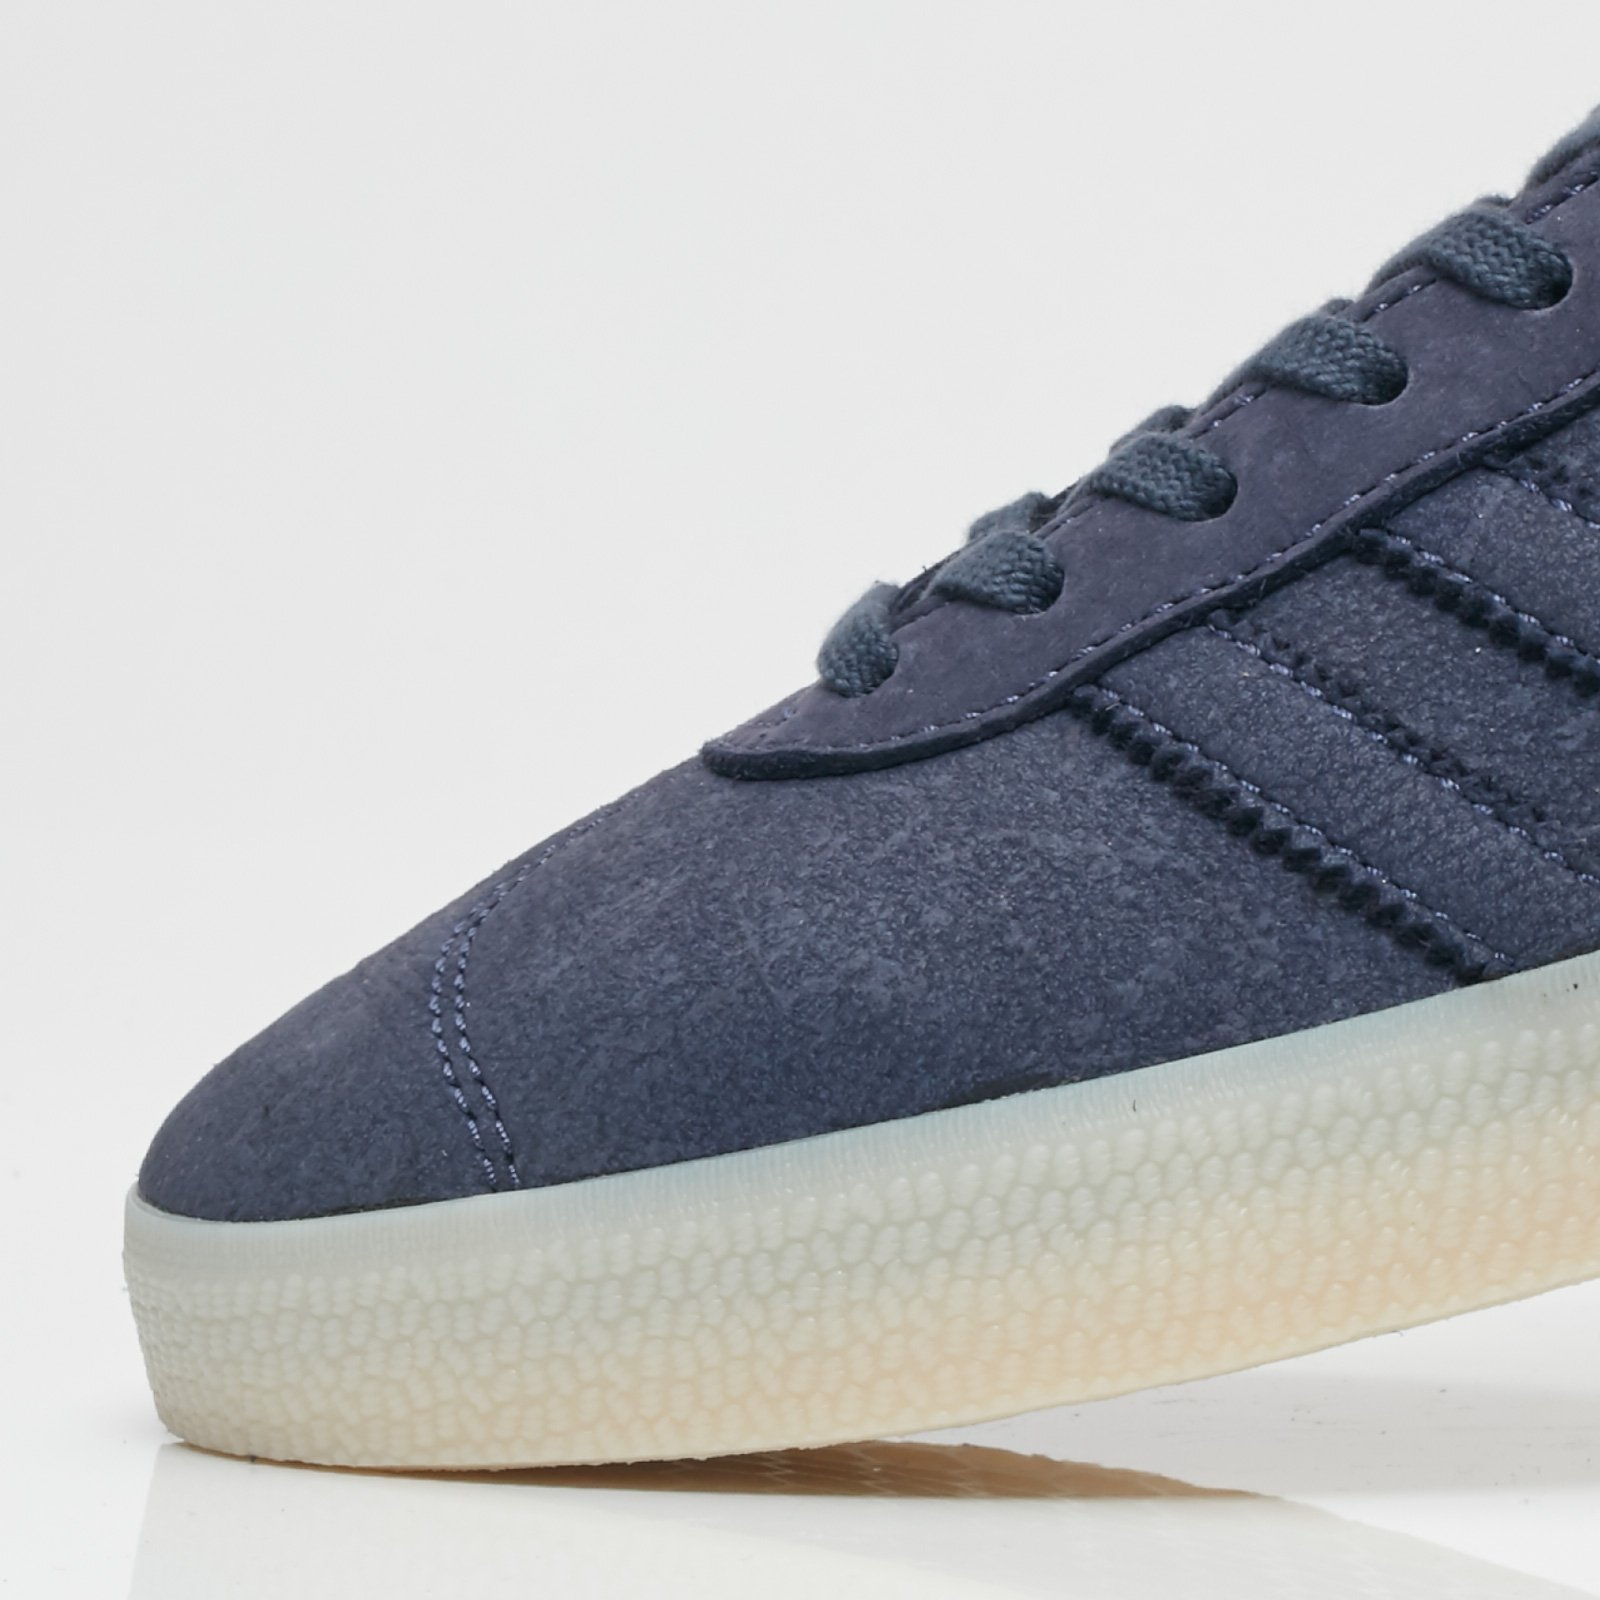 separation shoes b9c2d eaed4 ... adidas Originals Gazelle Crafted ...